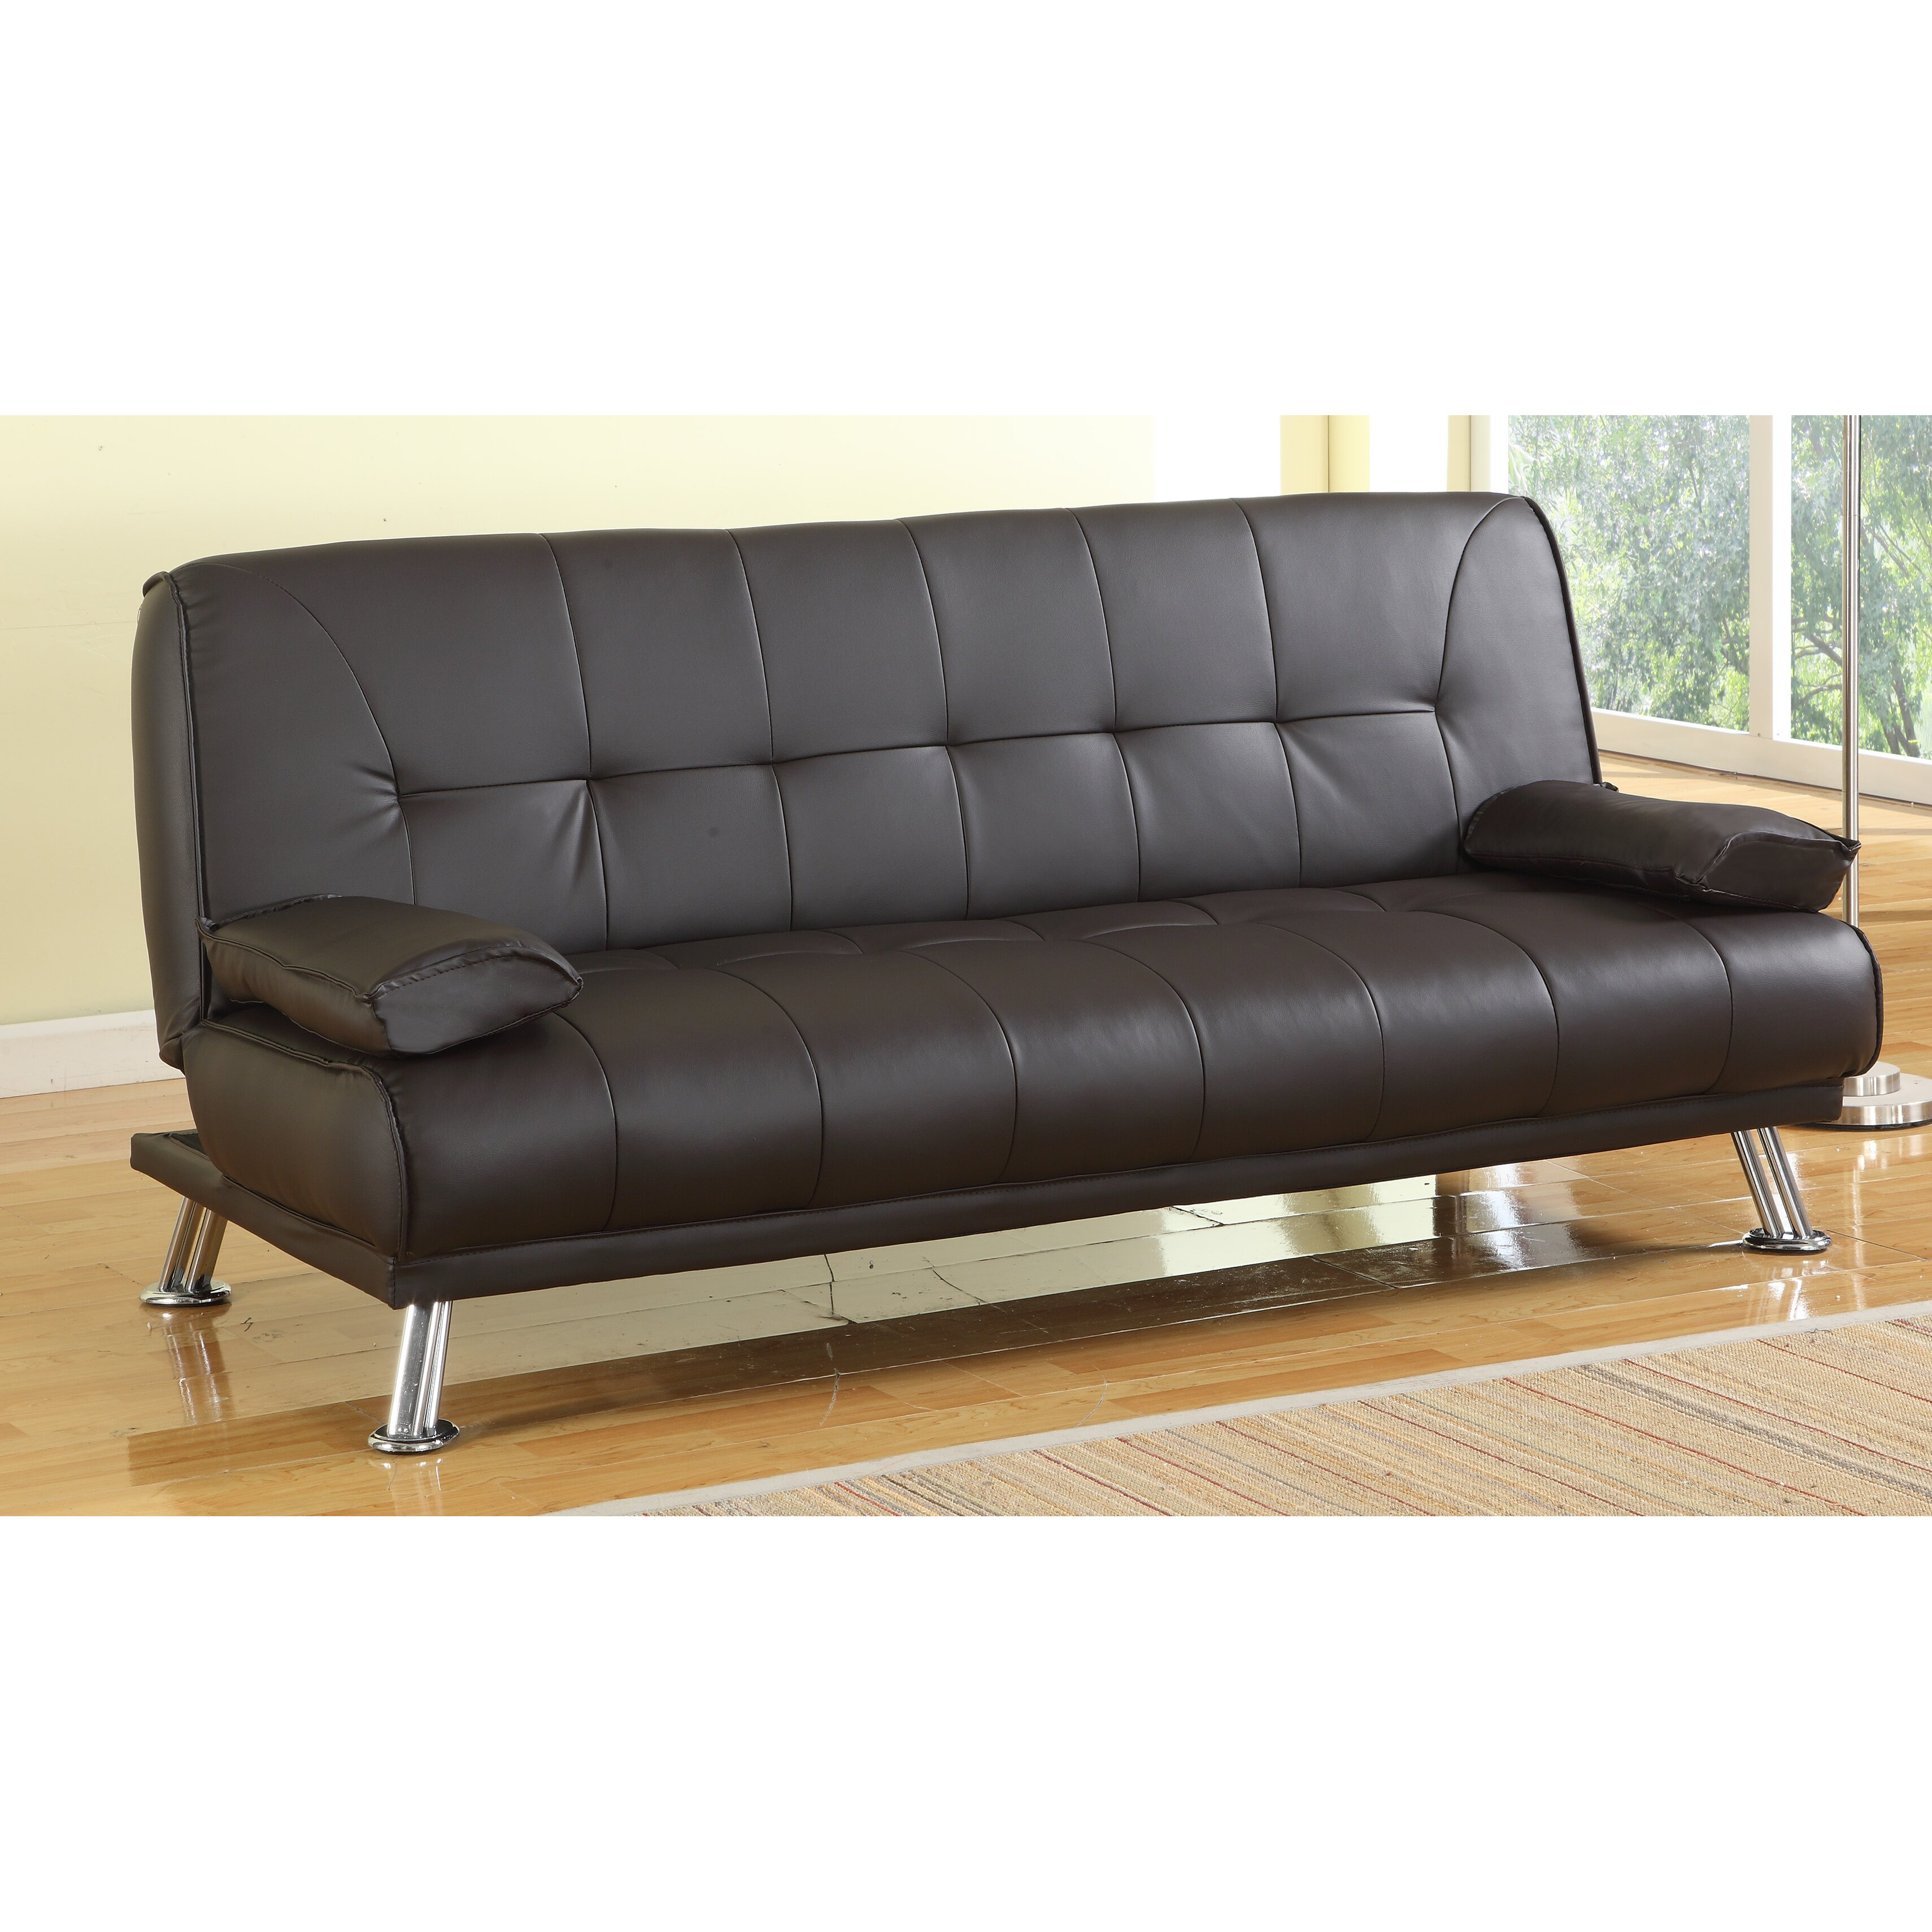 home haus 3 seater clic clac sofa reviews wayfair uk